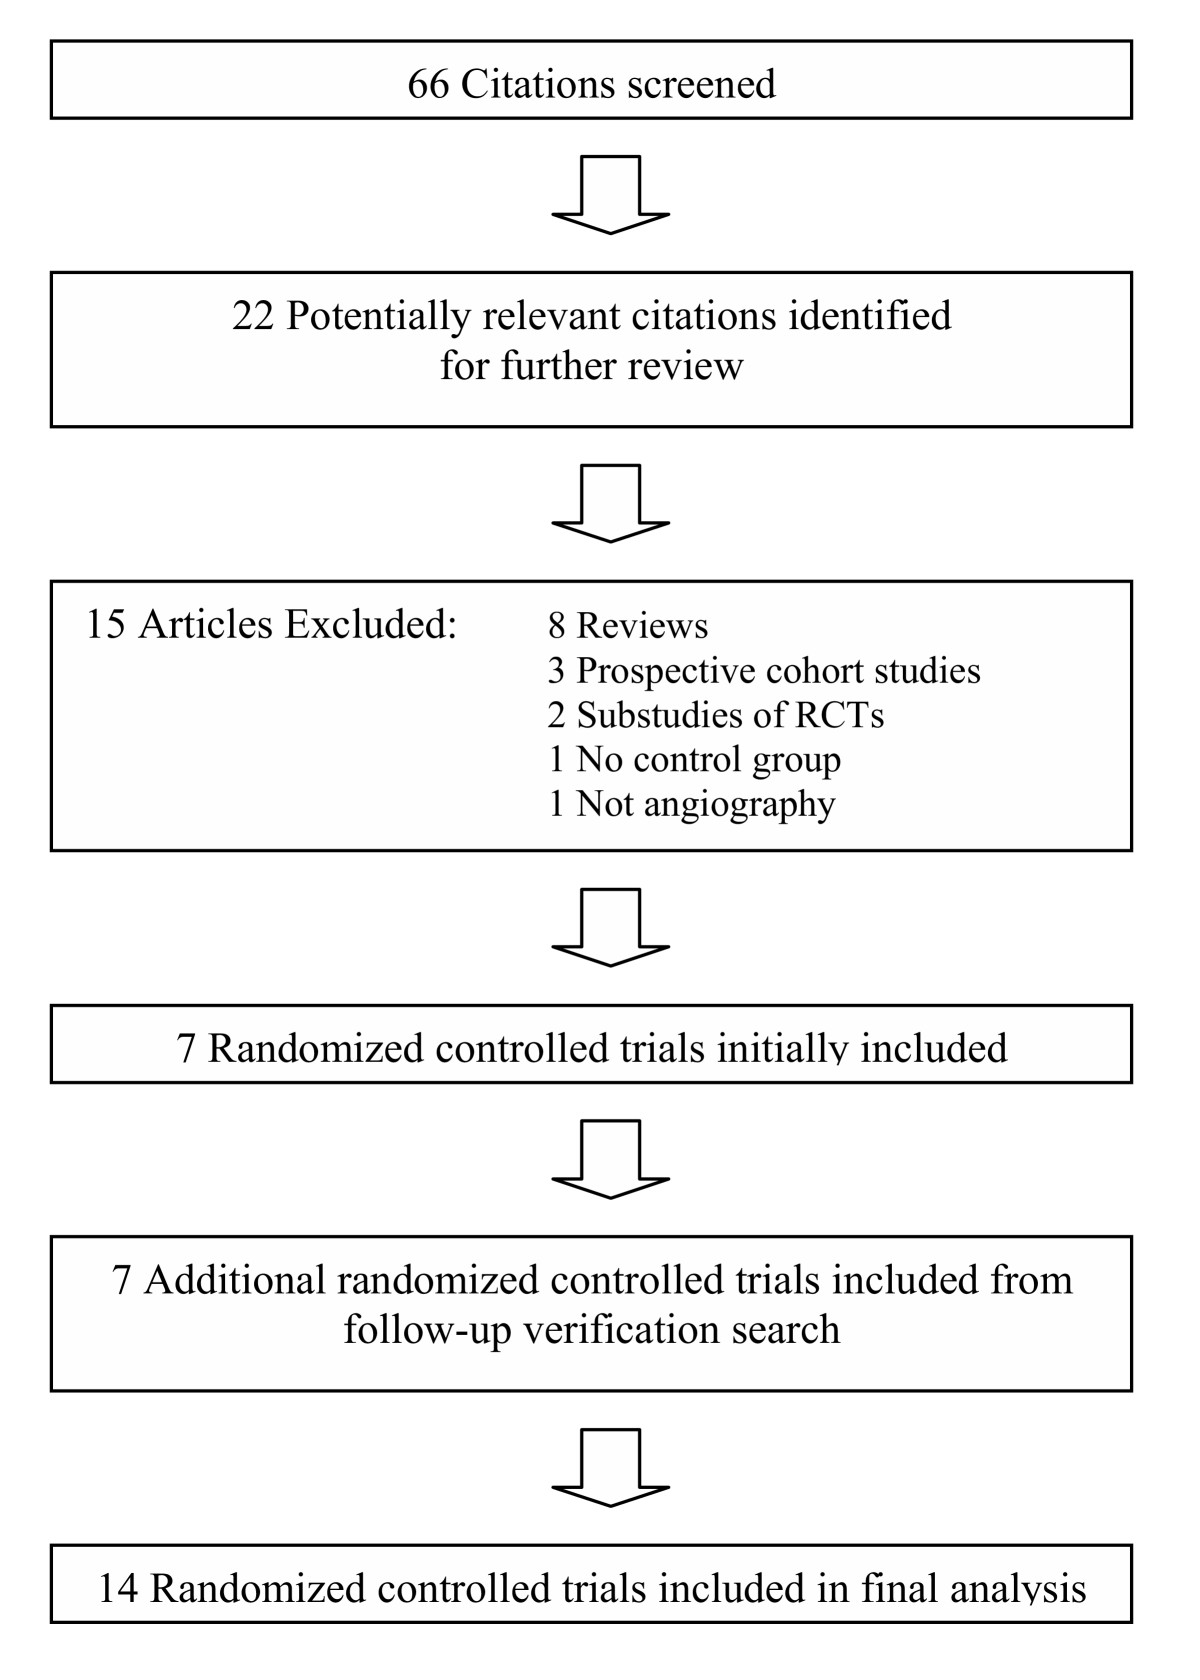 https://static-content.springer.com/image/art%3A10.1186%2F1741-7015-2-38/MediaObjects/12916_2004_Article_41_Fig1_HTML.jpg